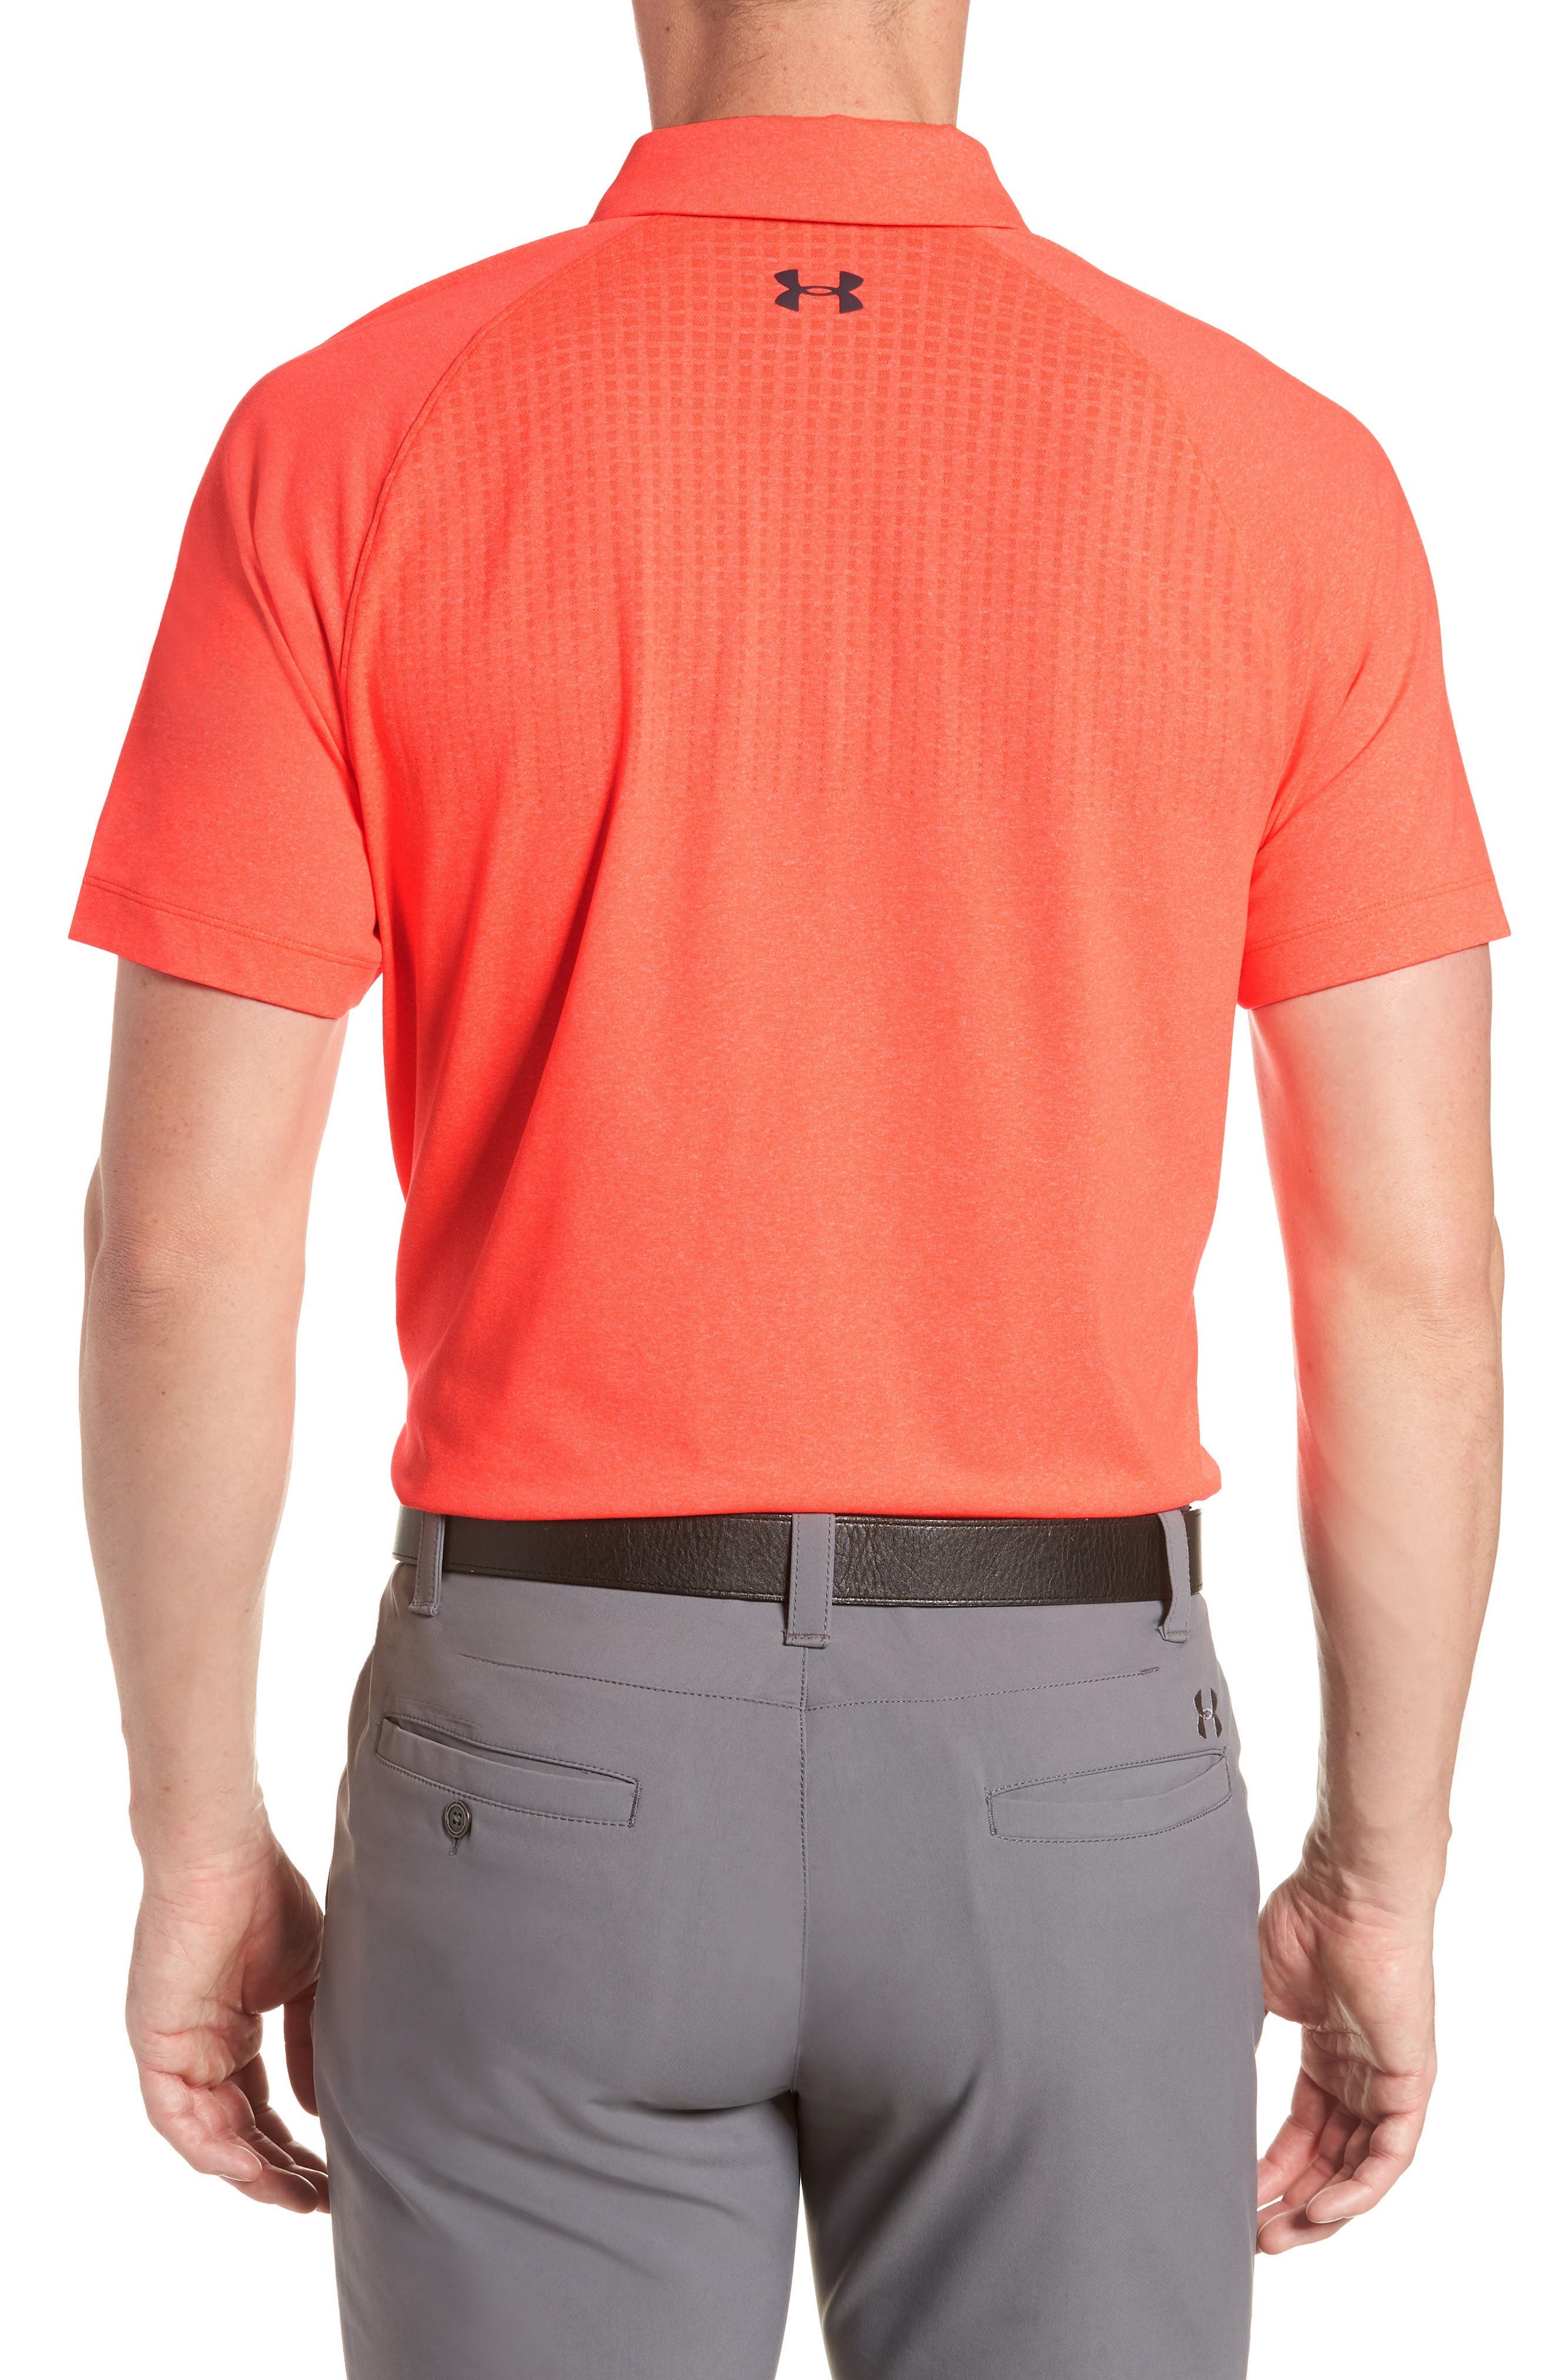 UNDER ARMOUR, Threadborne Outer Glow Regular Fit Polo Shirt, Alternate thumbnail 2, color, NEON CORAL LIGHT/ HEATHER